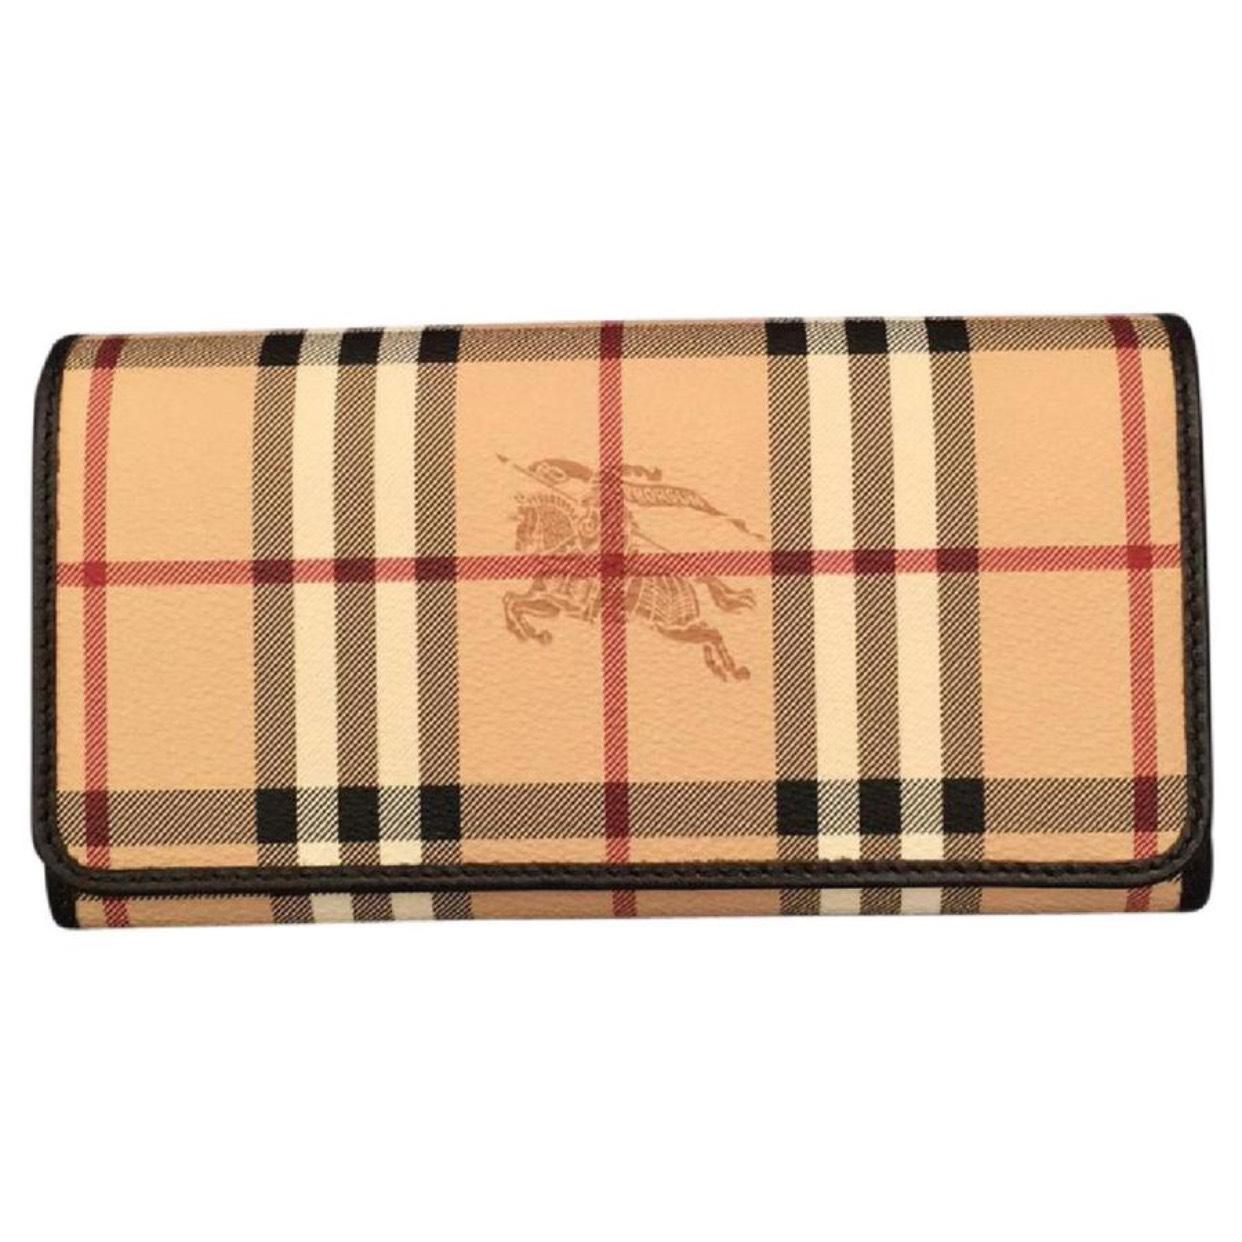 burberry outlet wallet q29z  Burberry Haymarket check wallet